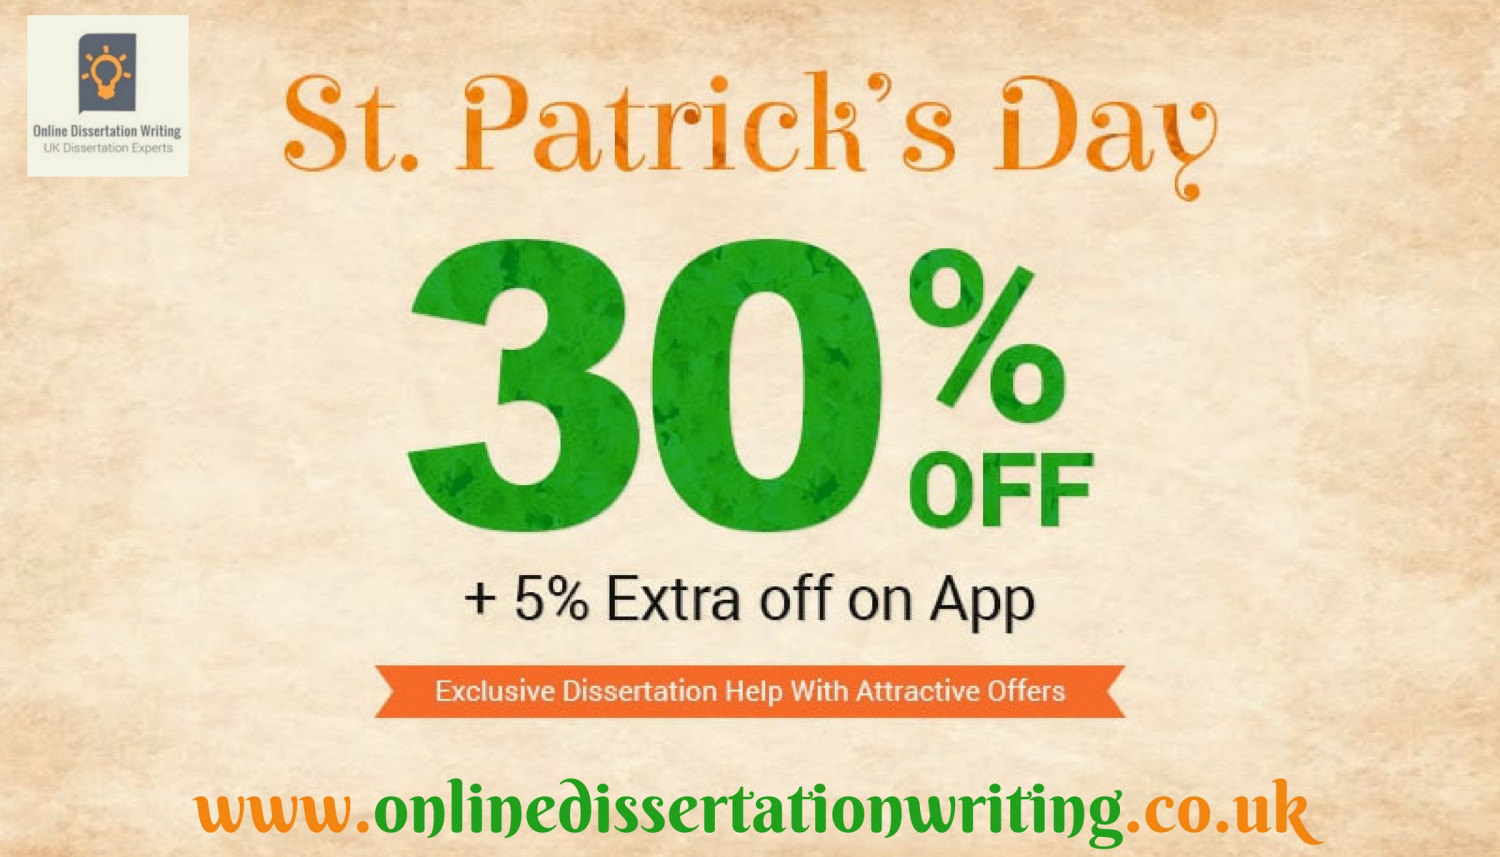 Get 30% off on dissertation orders written by Professionals of UK Infographic